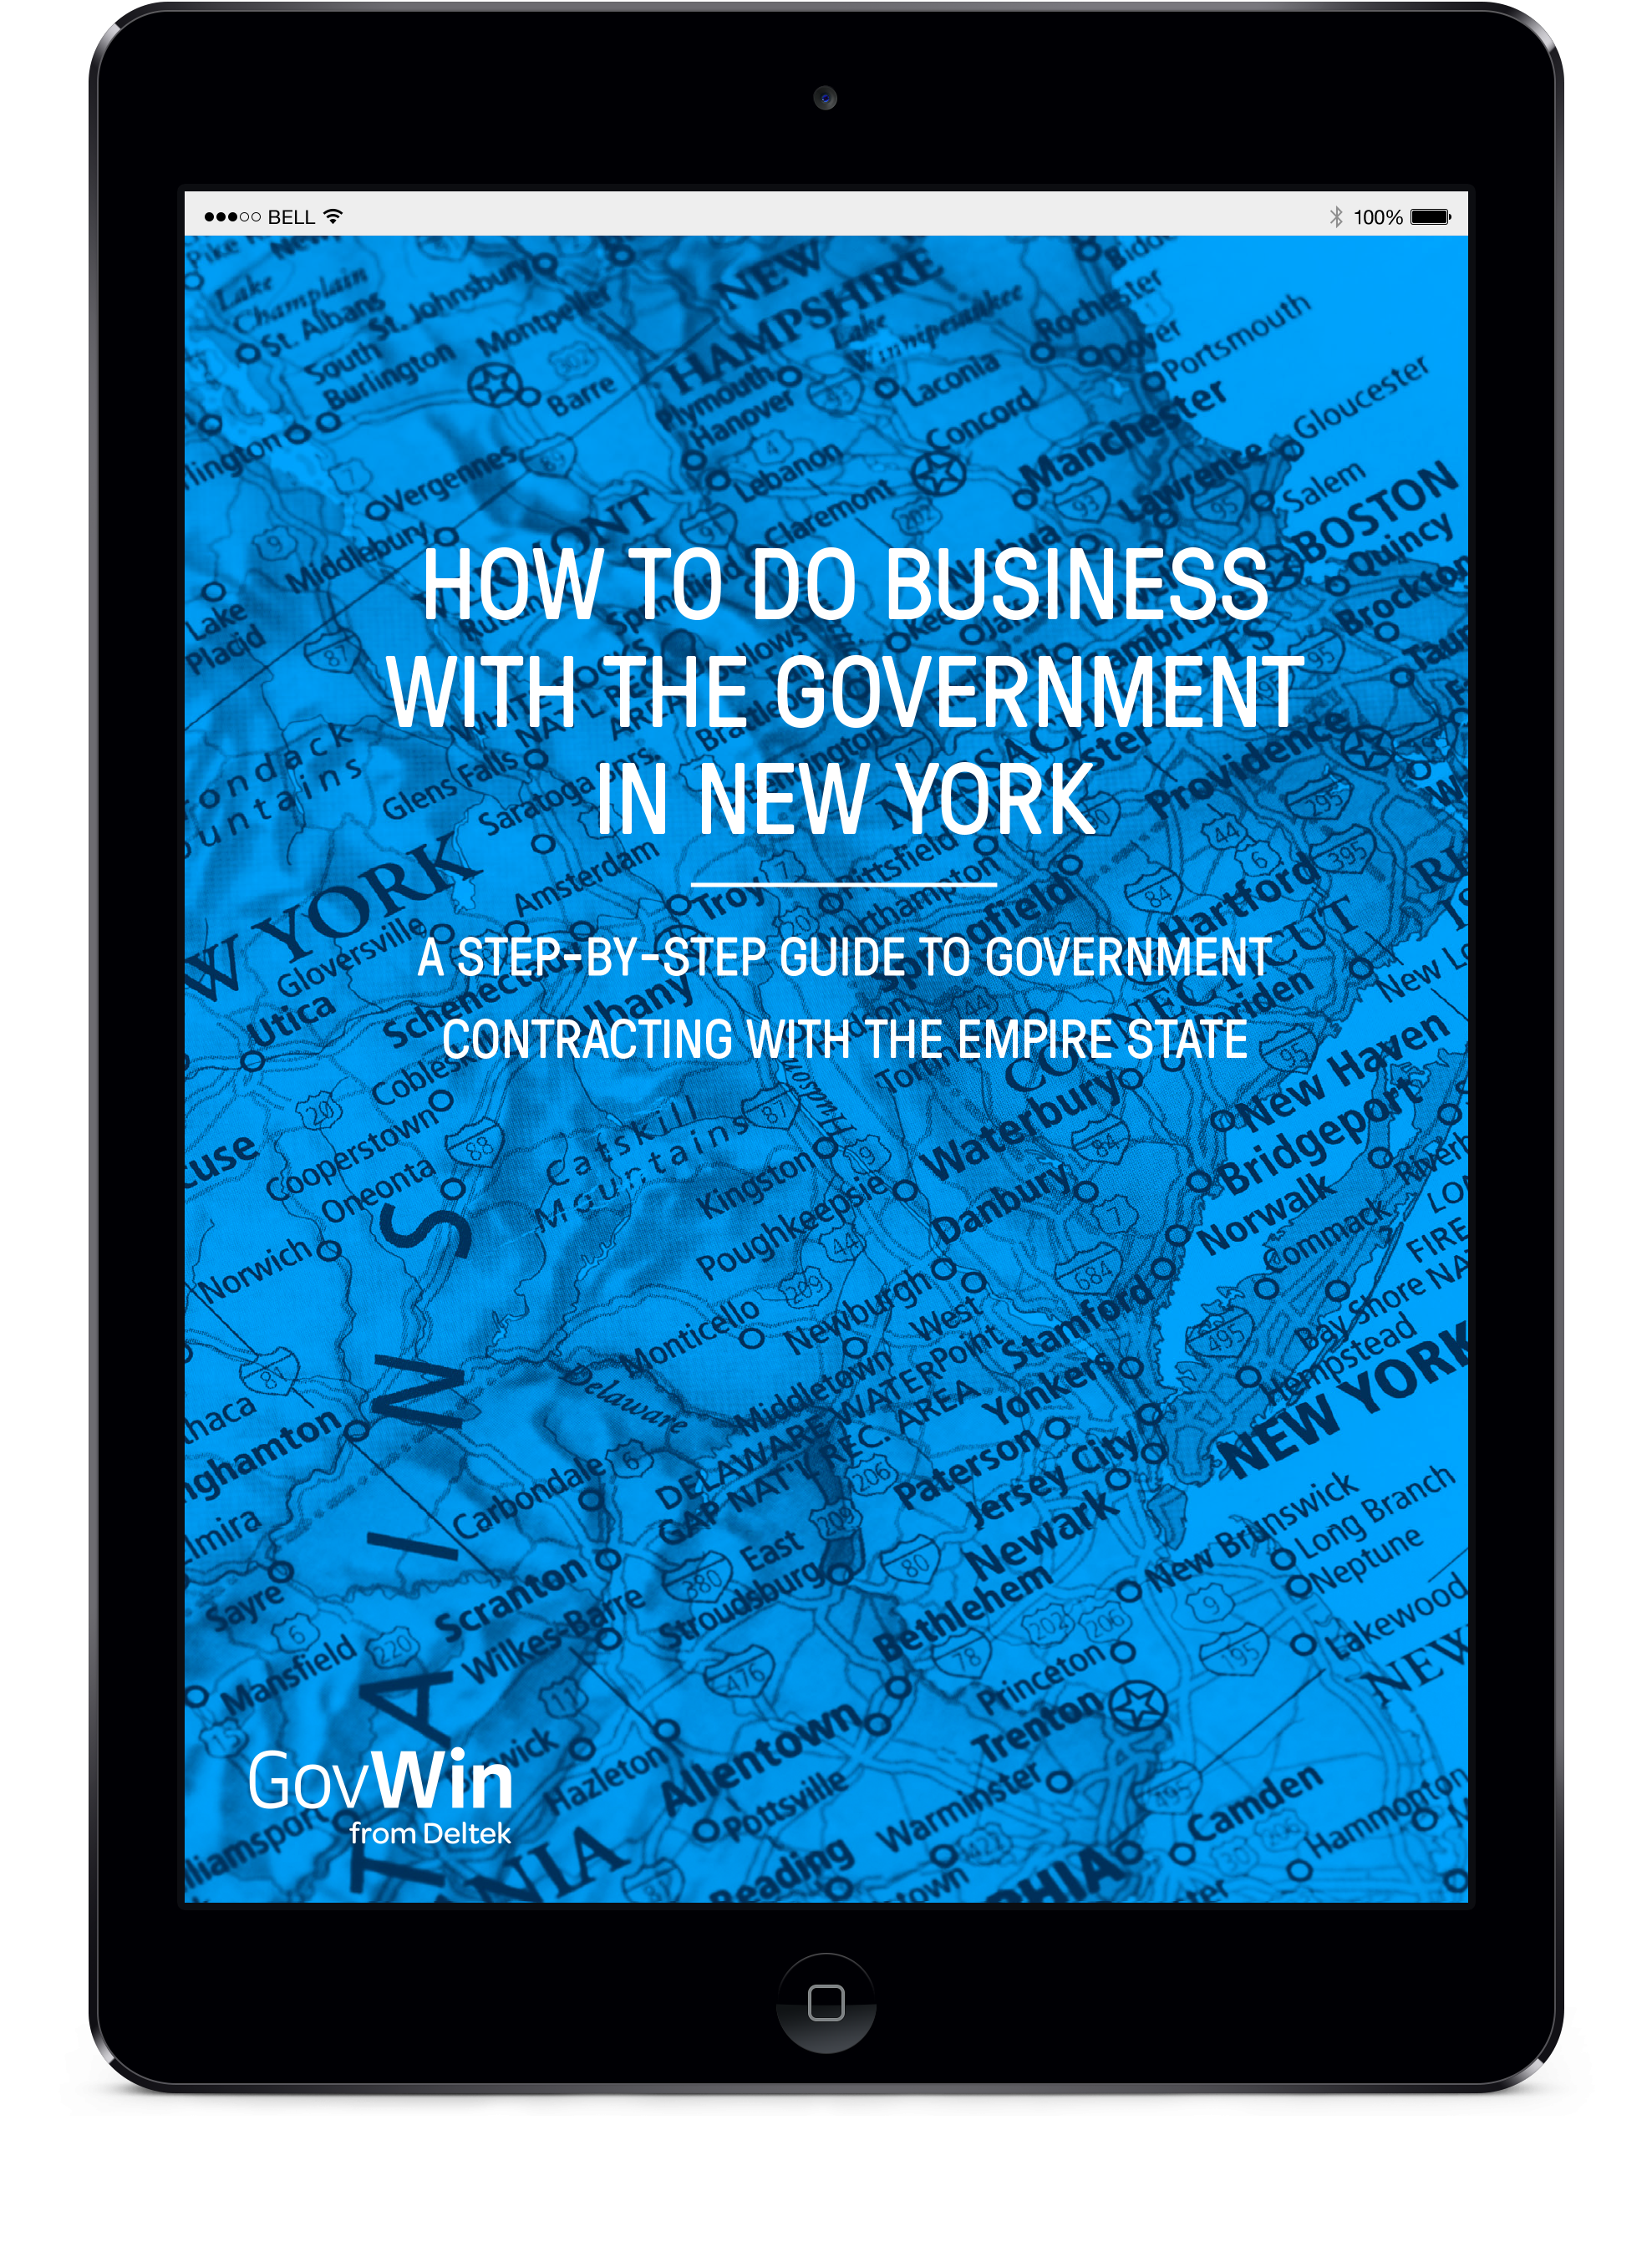 How to do Business with the Government in New York